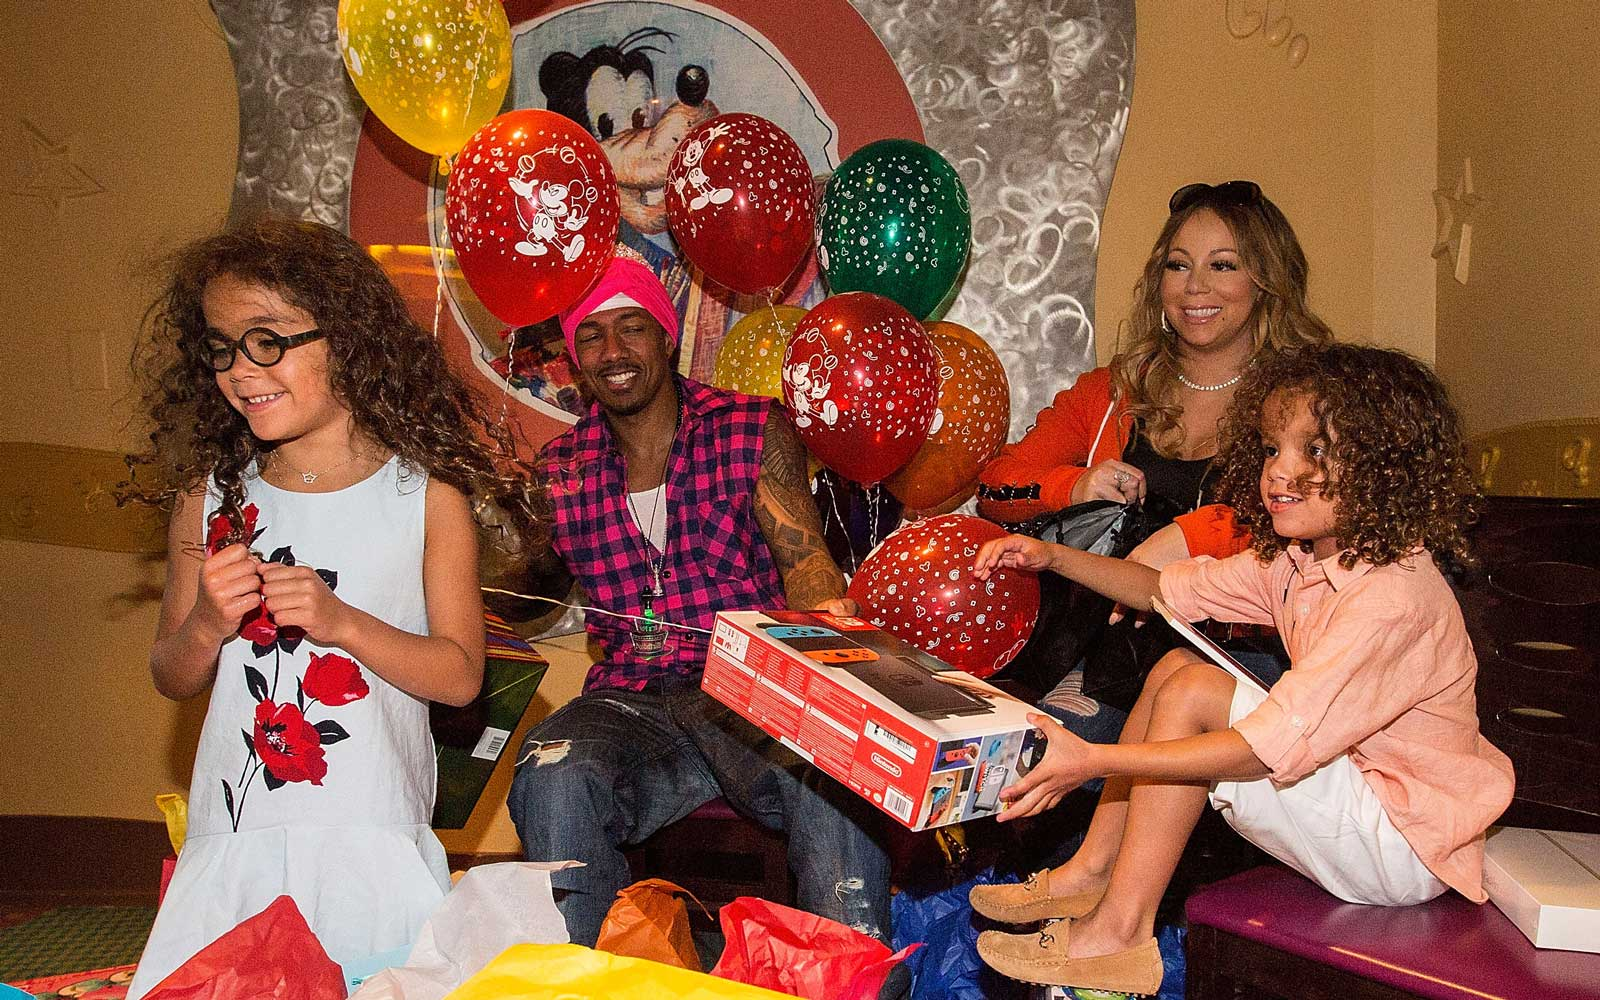 Mariah Carey and Nick Cannon threw the best Disneyland birthday party ever for their twins